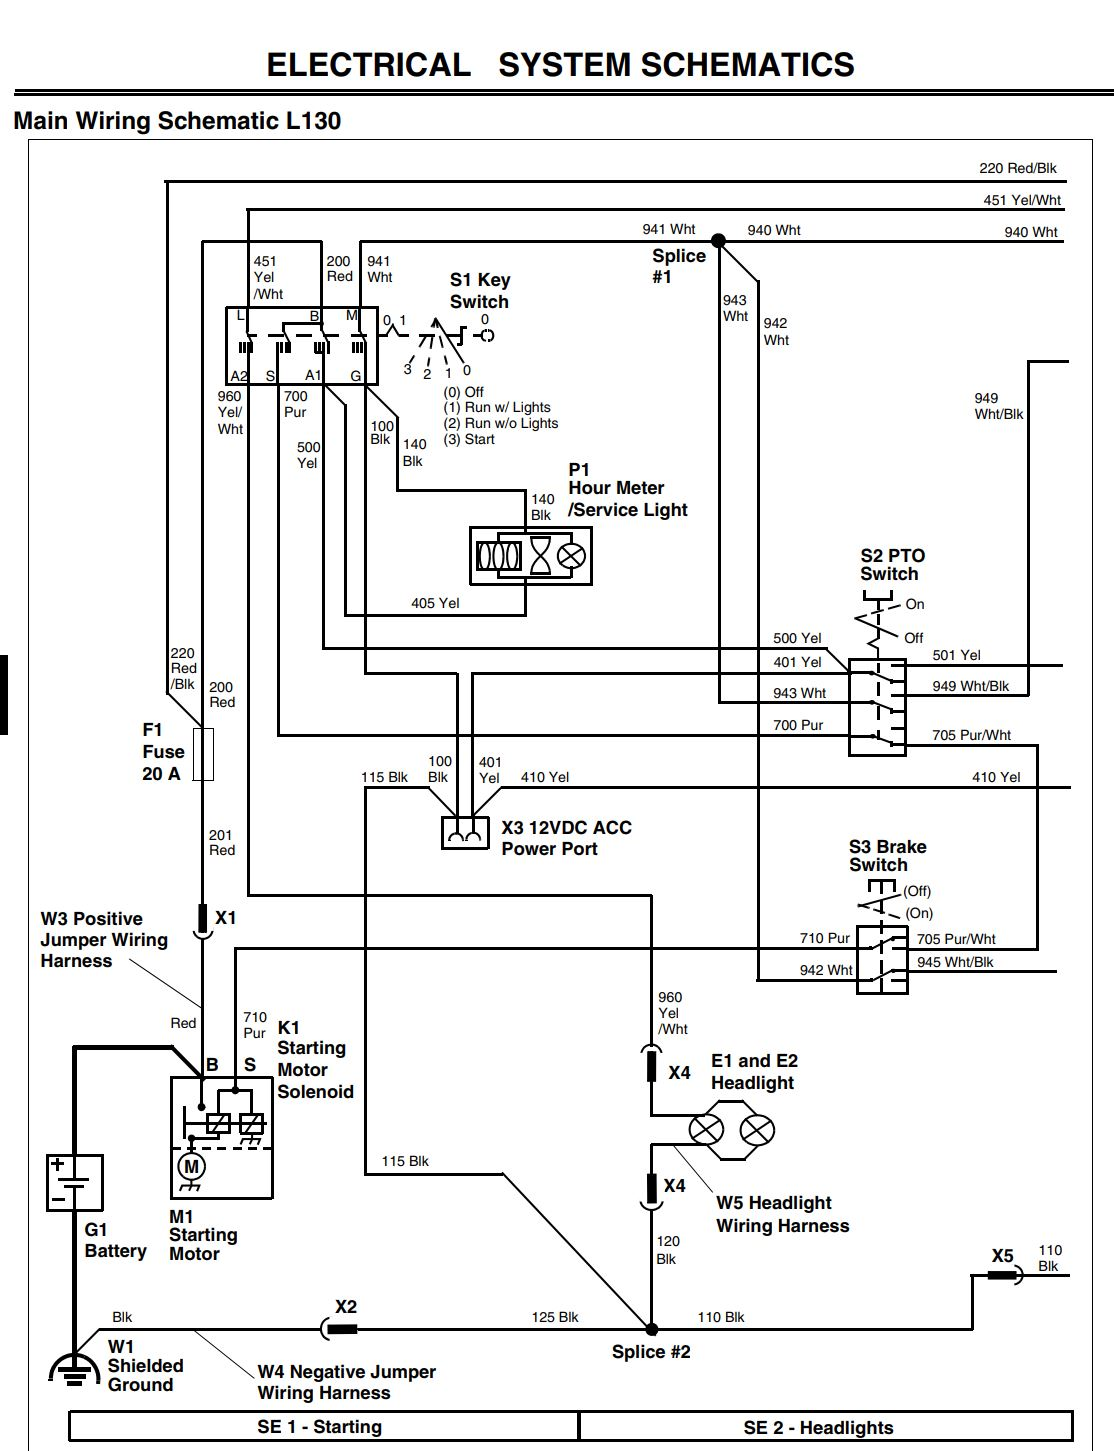 L130 Electrical Schematic_1.JPG